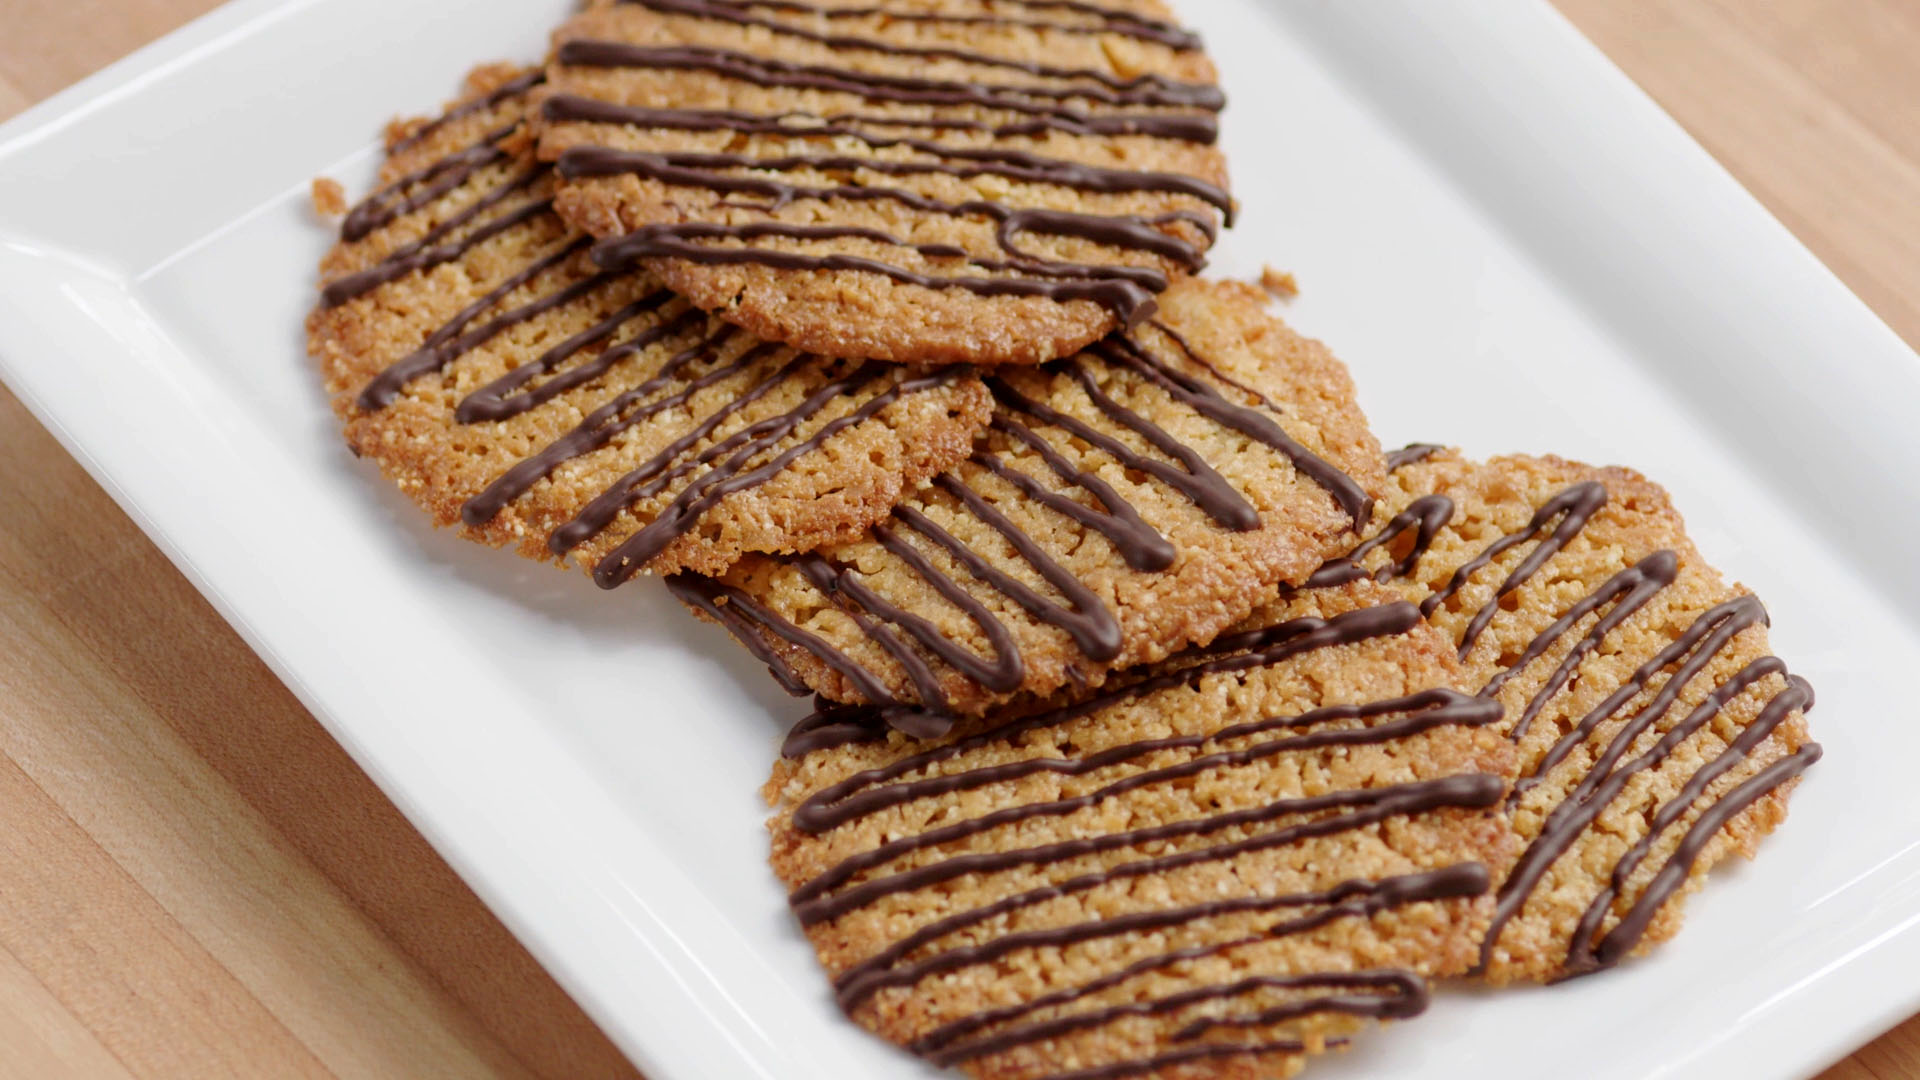 CSO_Selects_0000s_0034_CSO_1811_Intro_Cookies_16x9_25mbps.mp4.00_00_24_16.Still013.jpg